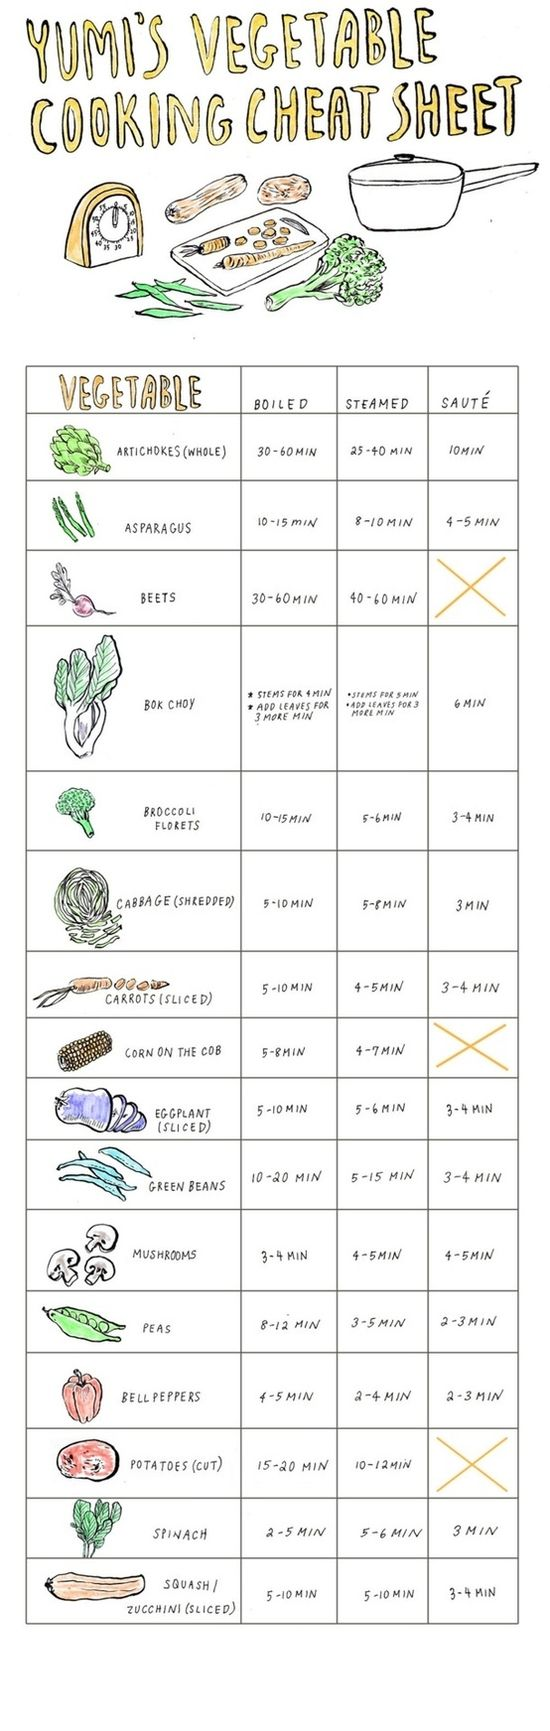 Know How Long to Cook Your Veggies